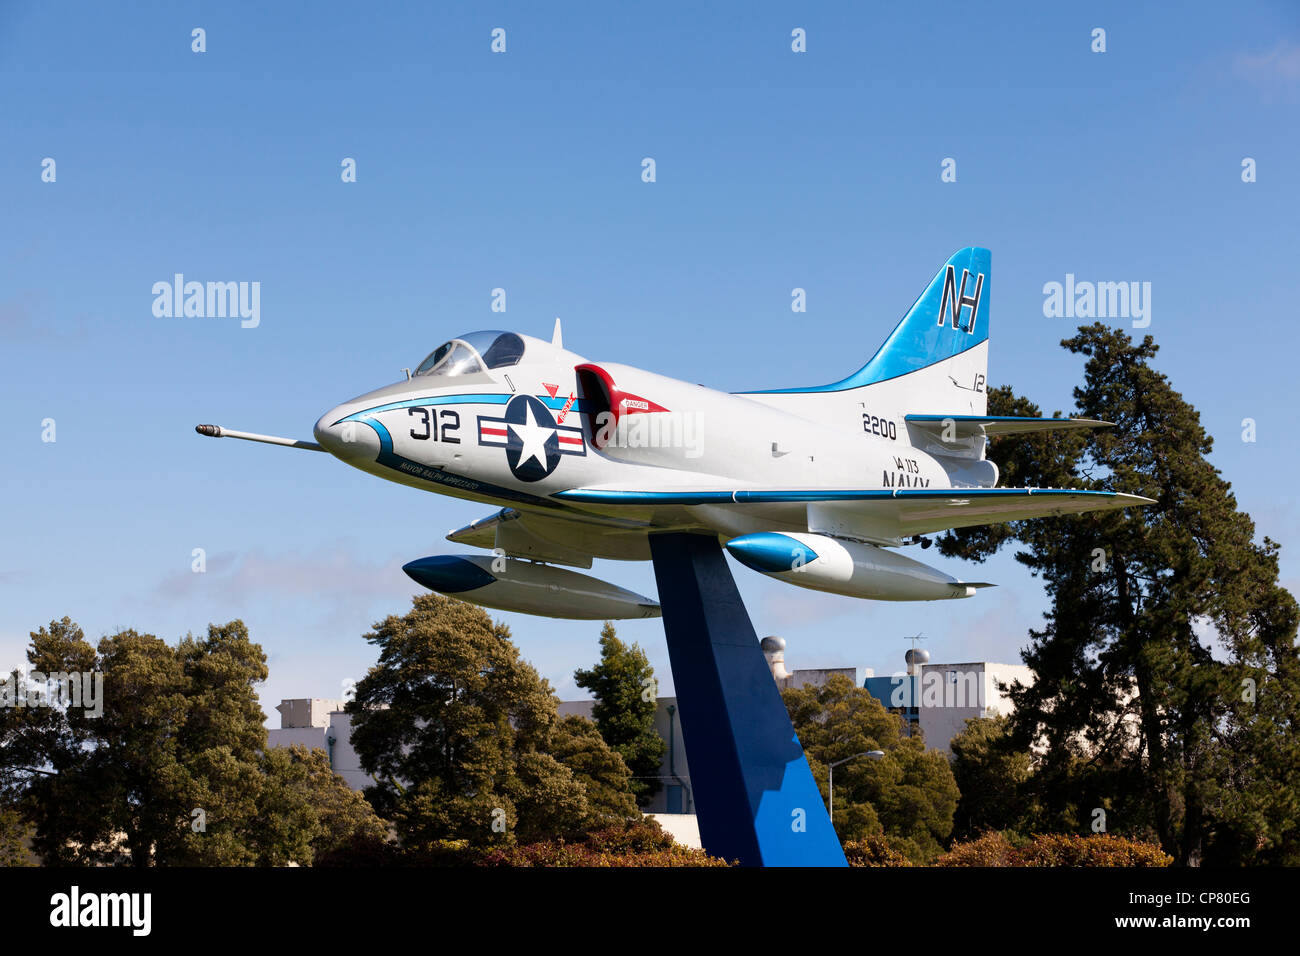 A4 jet fighter display montato Immagini Stock